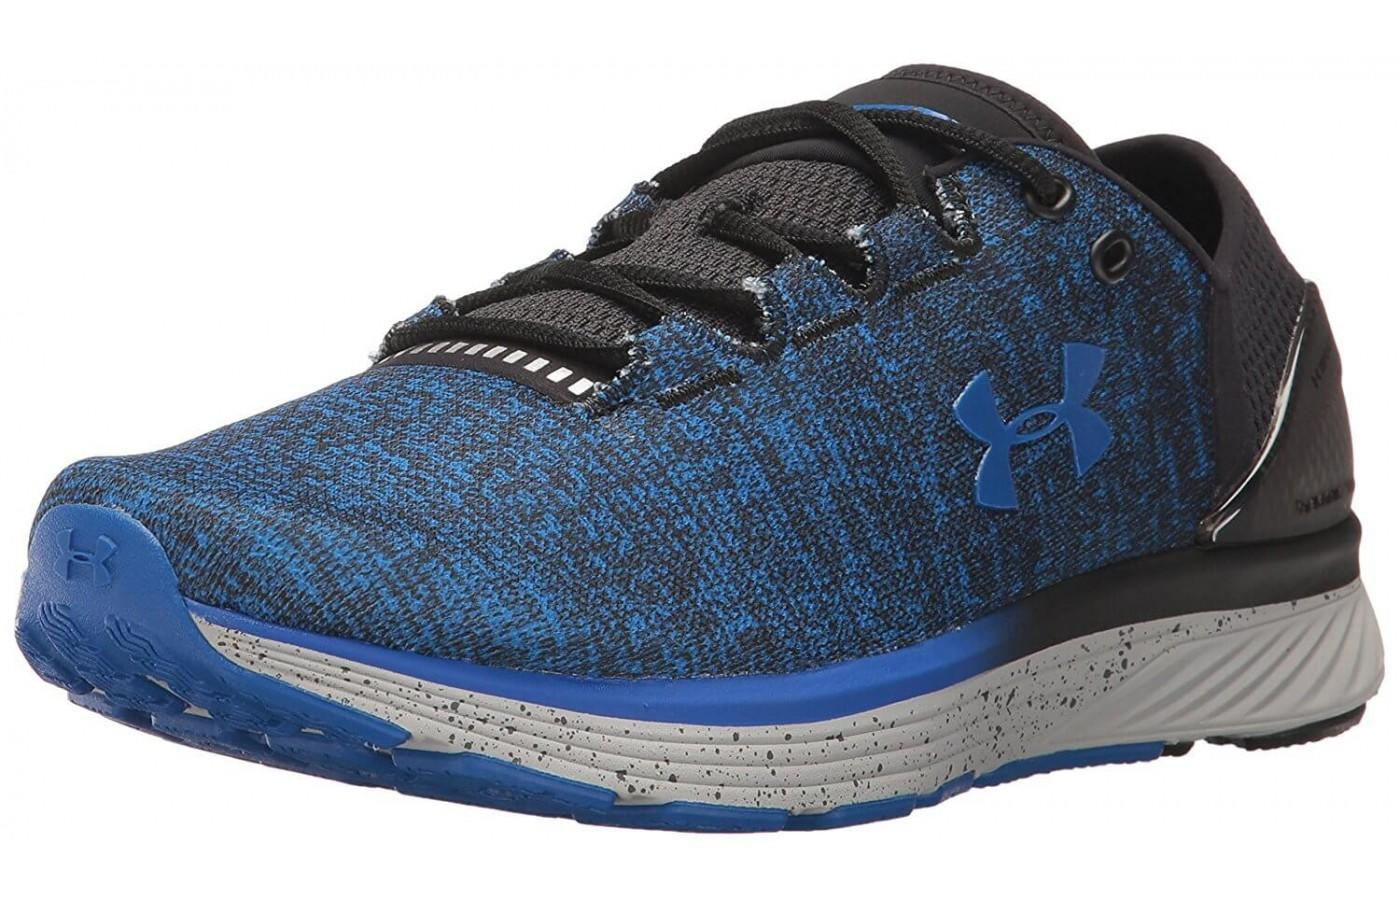 The Under Armour Charged Bandit 3 is a lightweight, comfortable shoe.